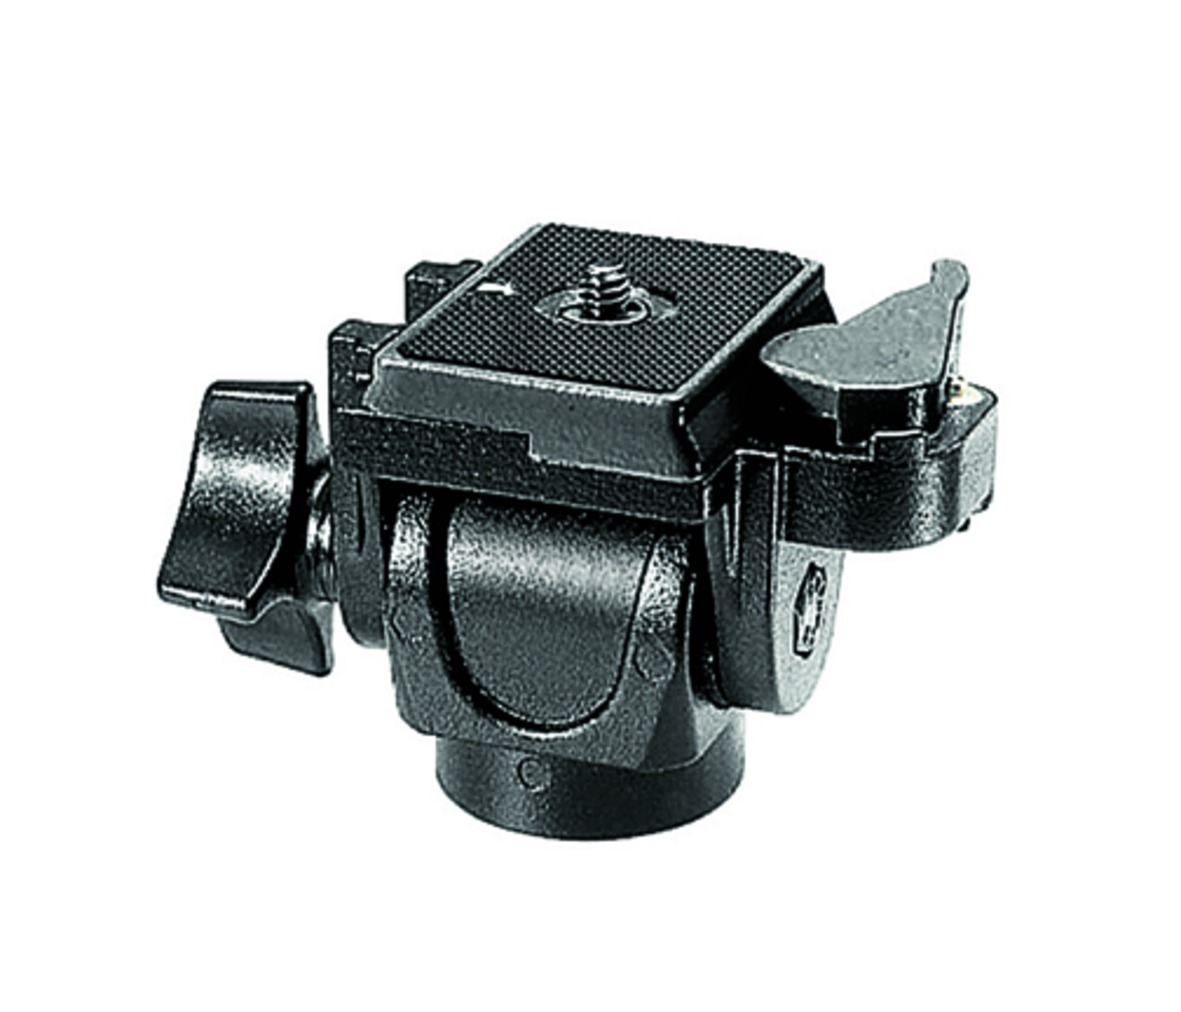 Manfrotto Monopod Head with Quick Release, wide 90� scope